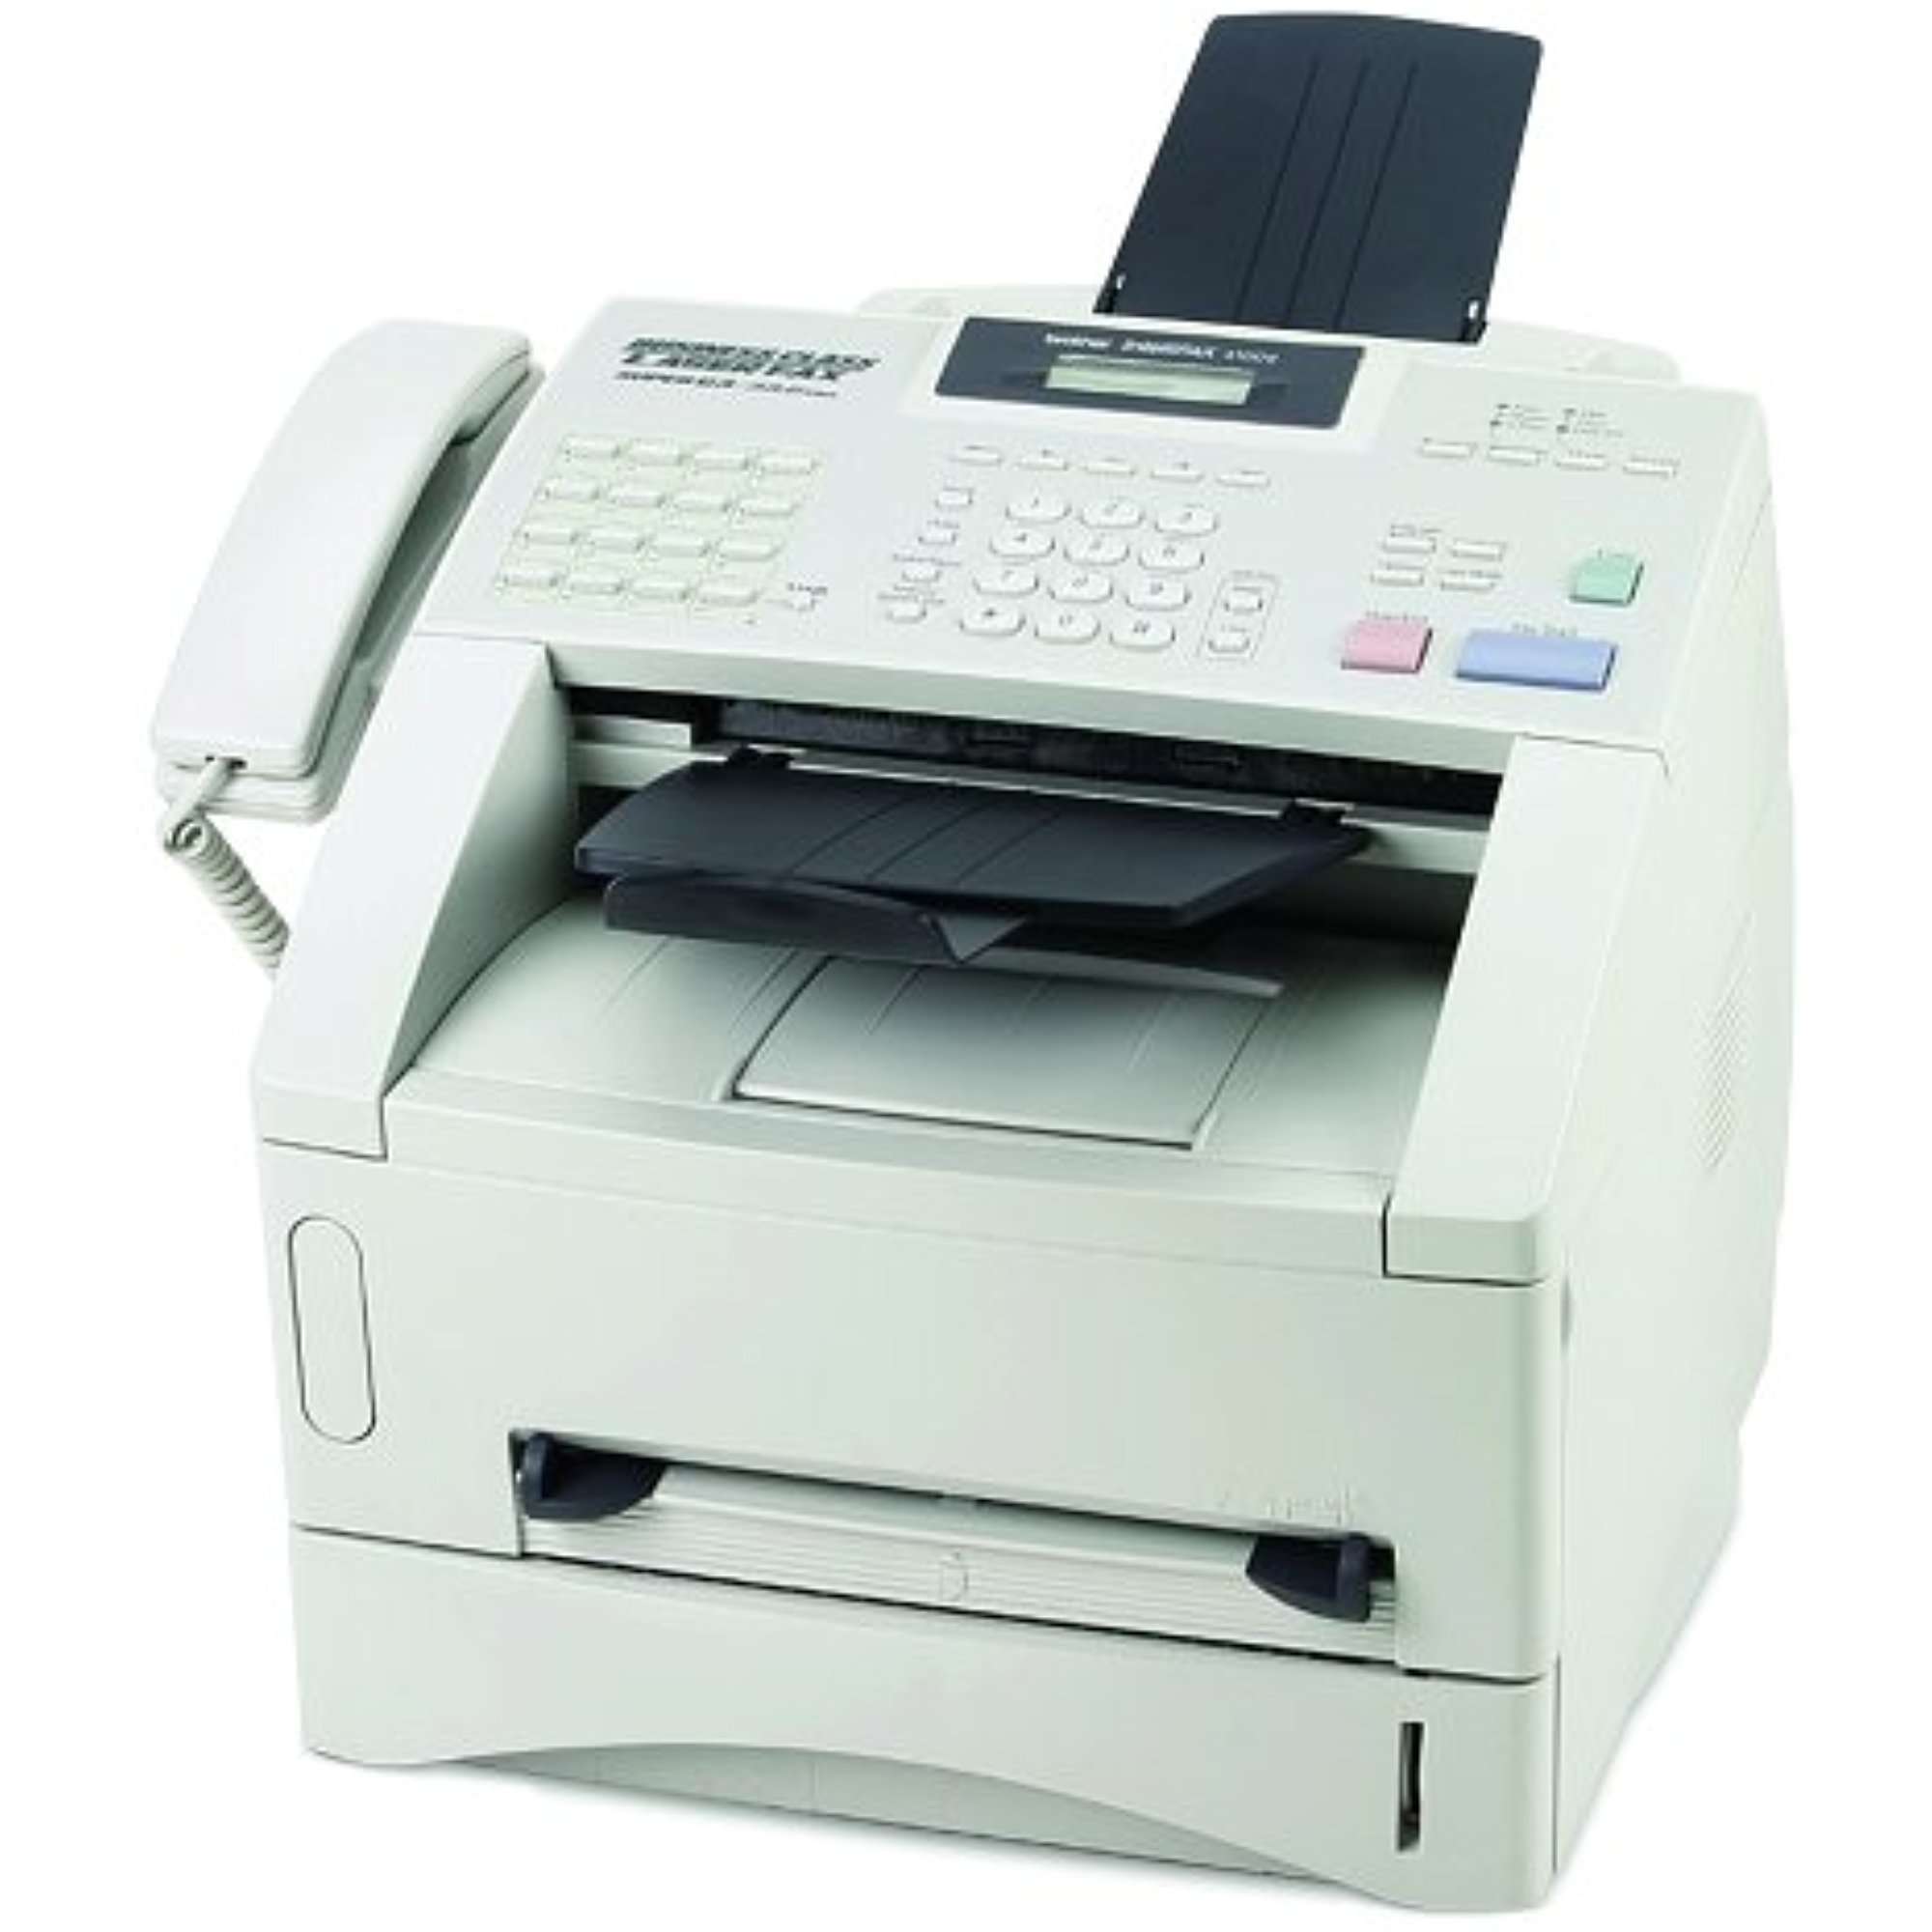 Refurbished Brother IntelliFax 4100E Fax Machine Laser Printer by Brother